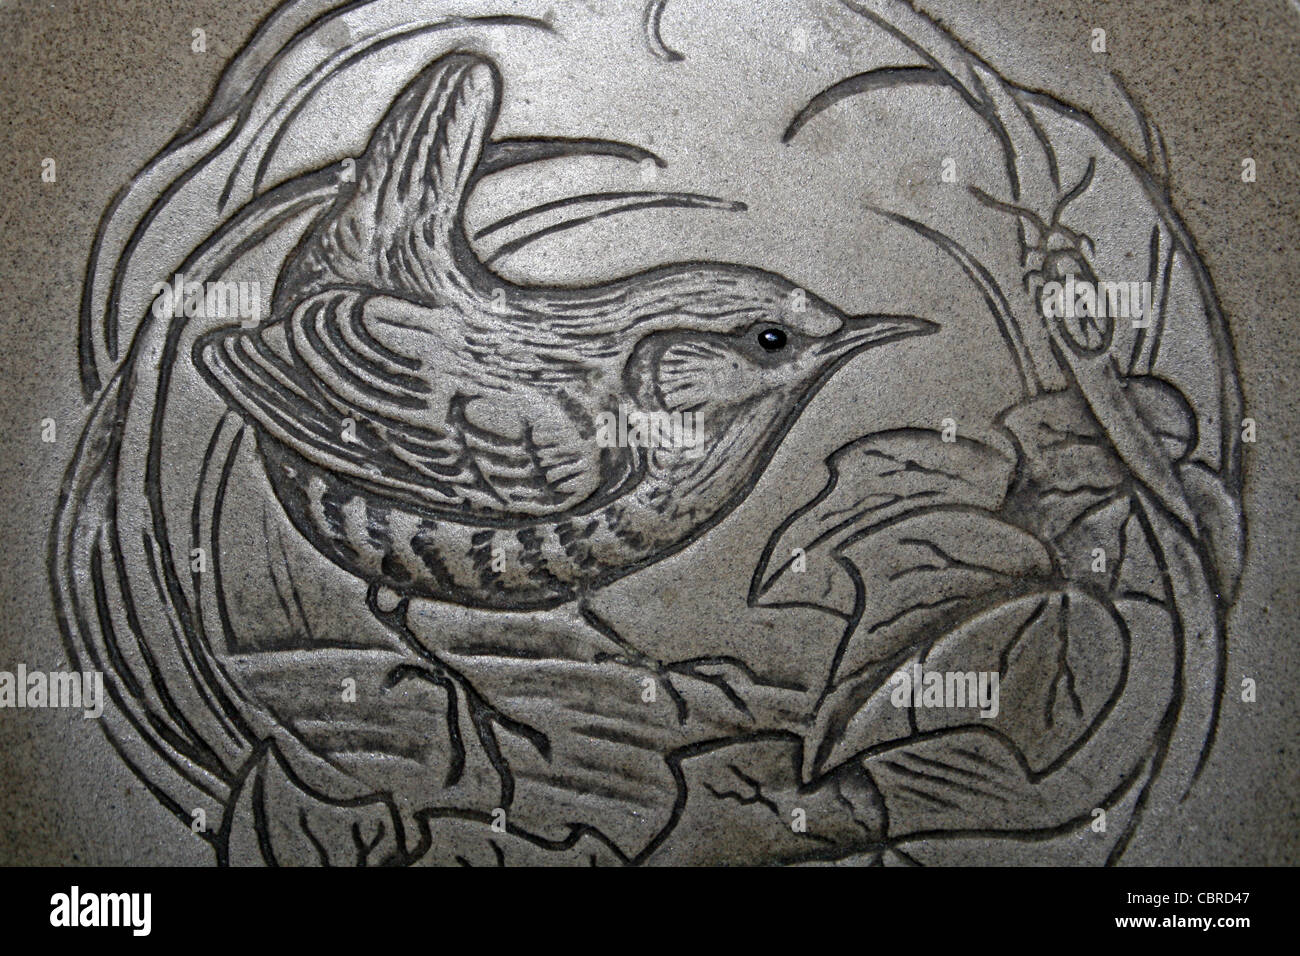 Wren by Poole Pottery Stoneware Plate - Stock Image